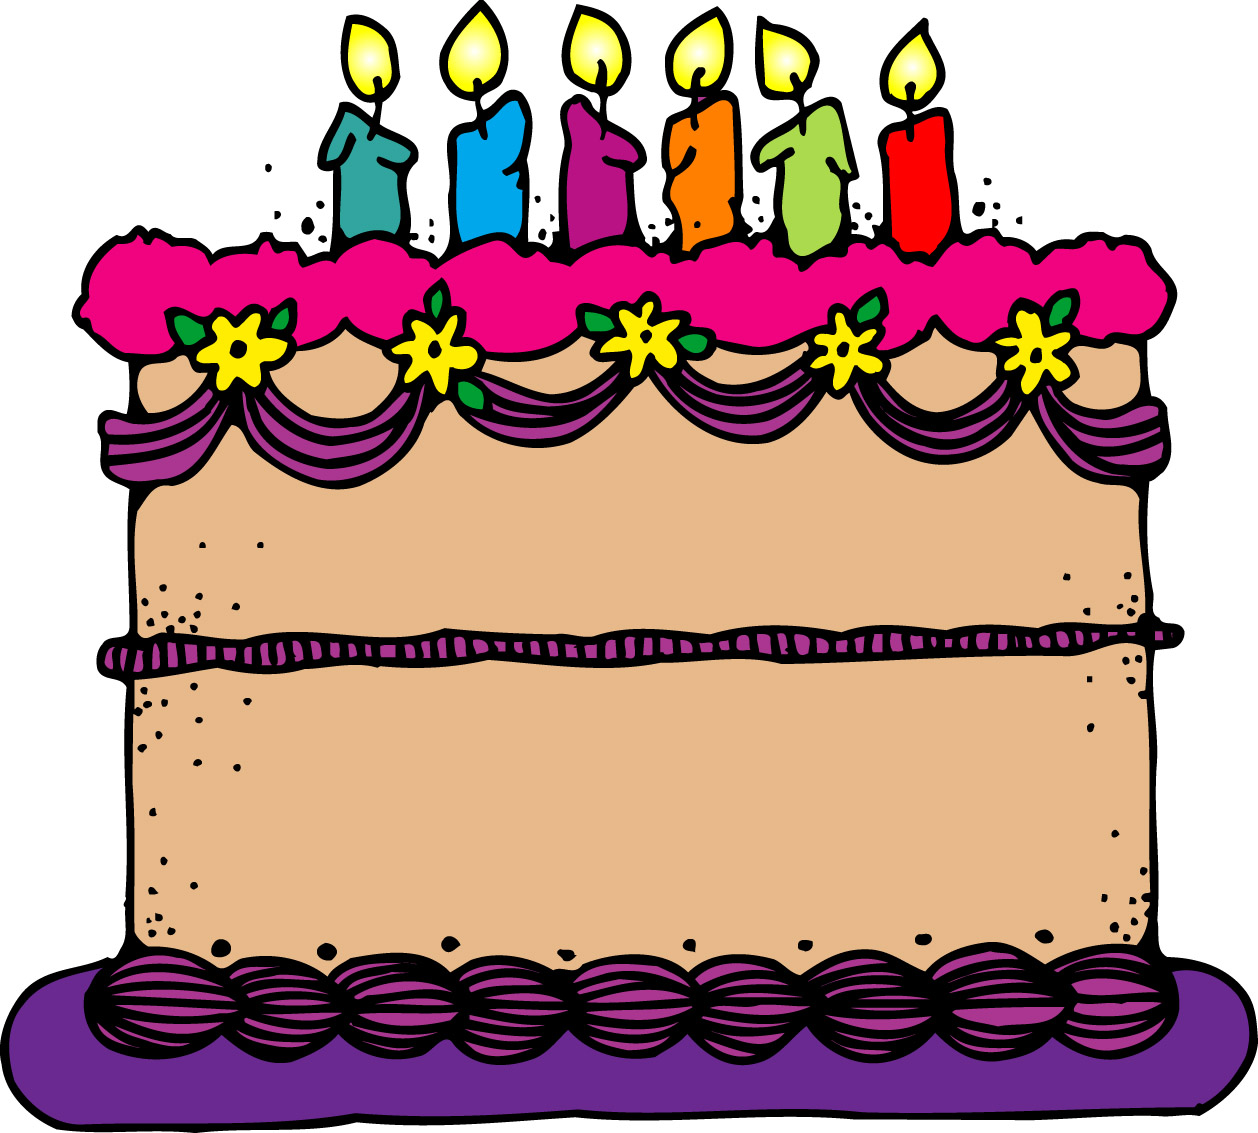 Decorated cake clipart clip art library Birthday Cake Images | Free download best Birthday Cake Images on ... clip art library